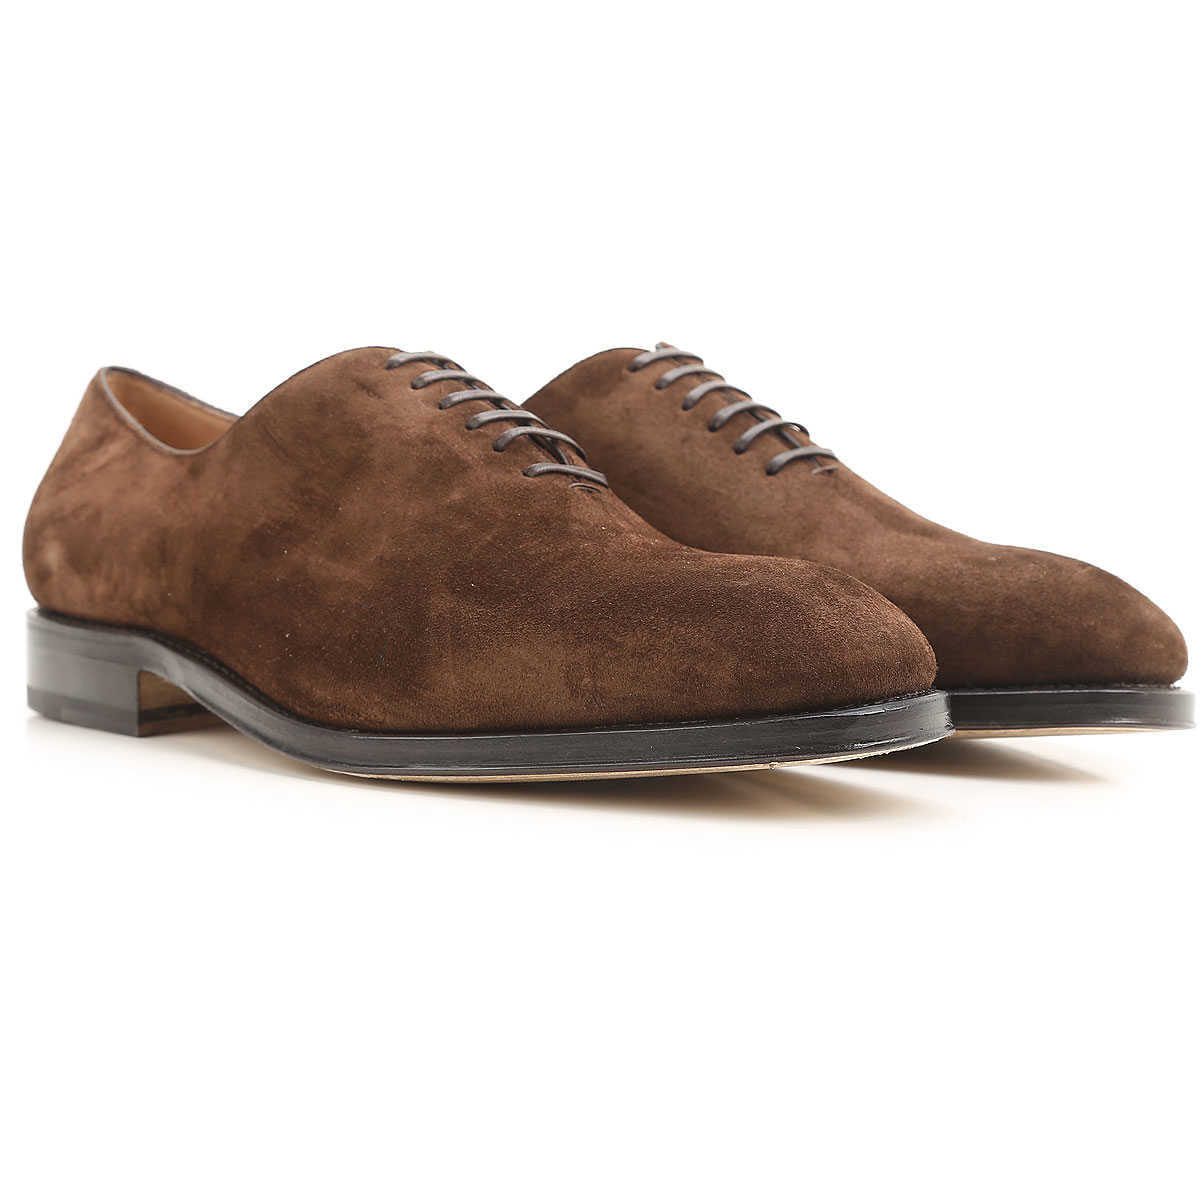 Salvatore Ferragamo Lace Up Shoes for Men Oxfords 10 7 9 Derbies and Brogues On Sale in Outlet UK - GOOFASH